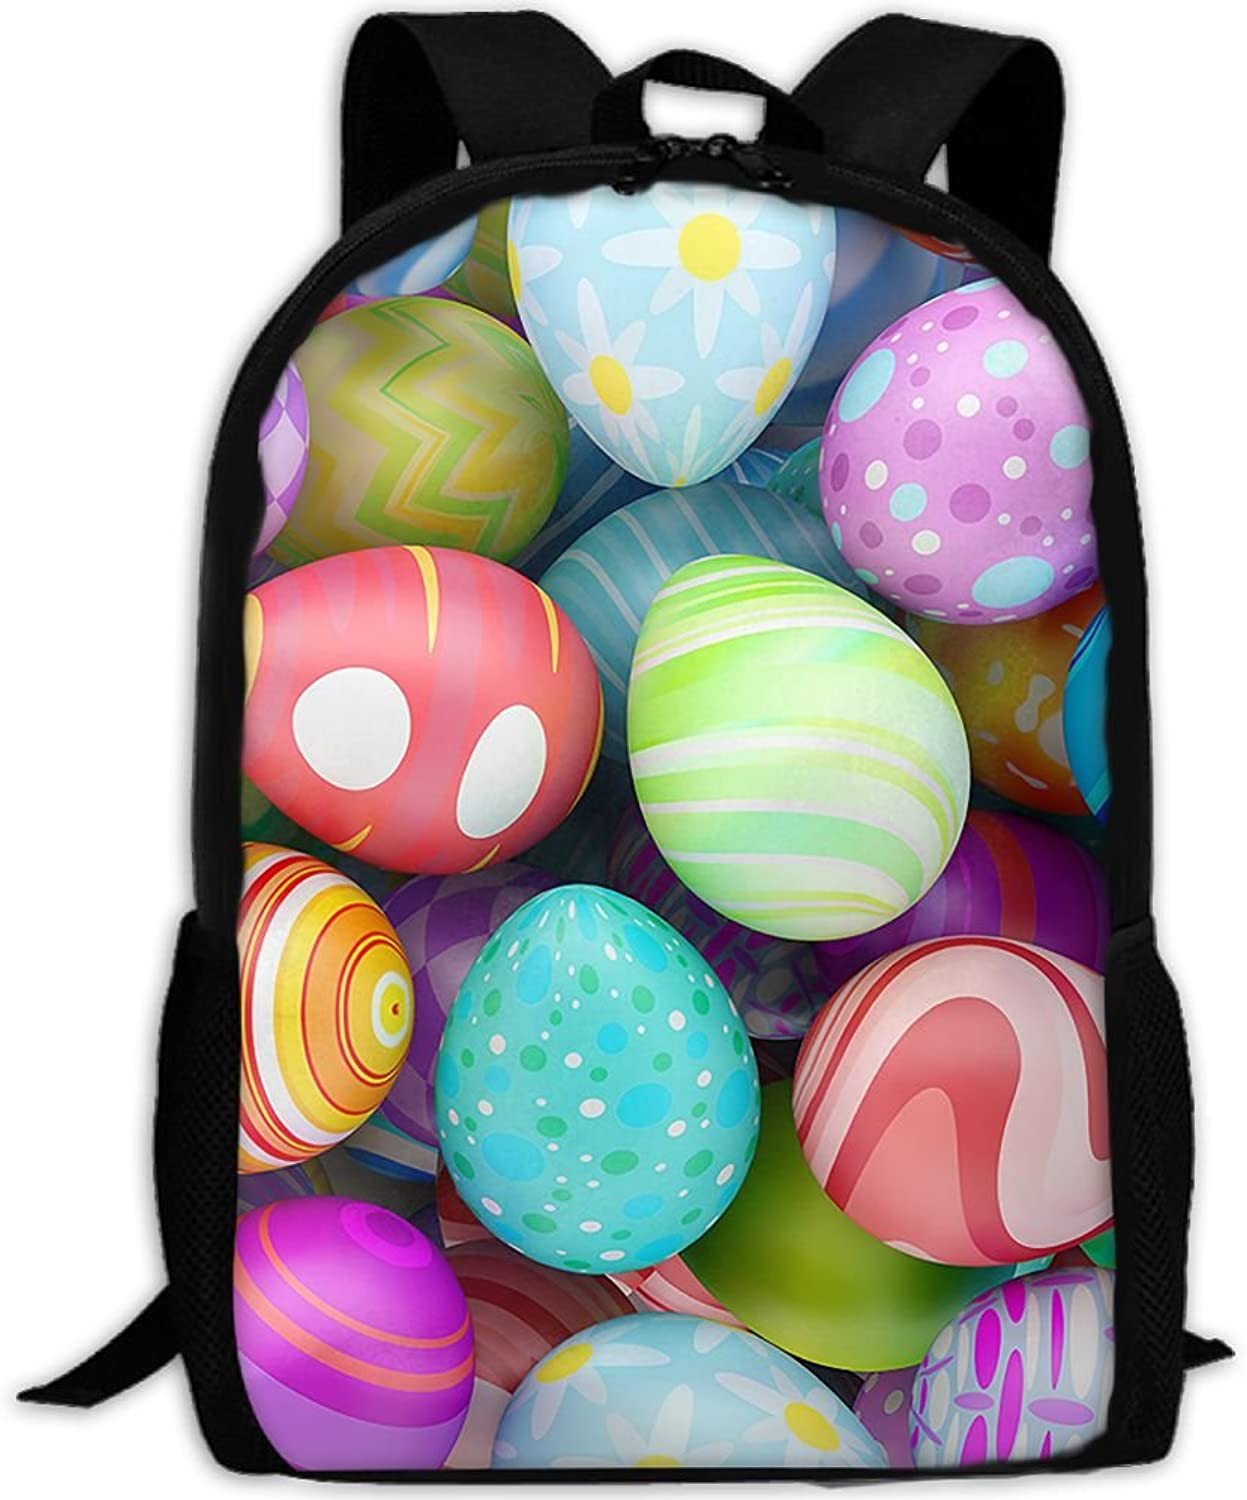 Backpack Laptop Travel Hiking School Bags Nice Easter Eggs Daypack Shoulder Bag